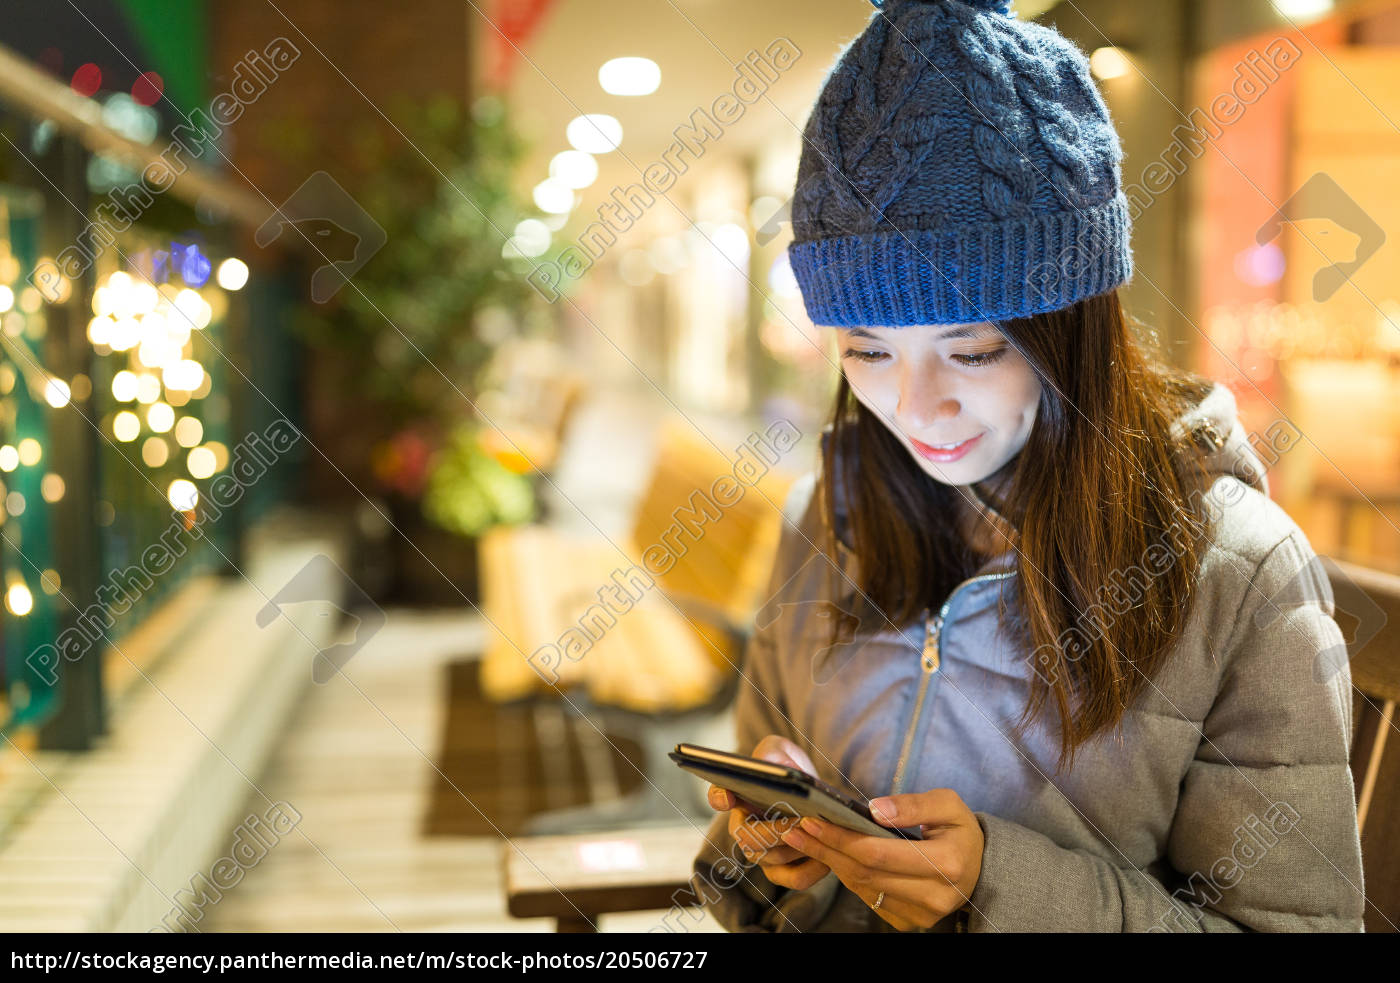 woman, using, mobile, phone, at, night - 20506727